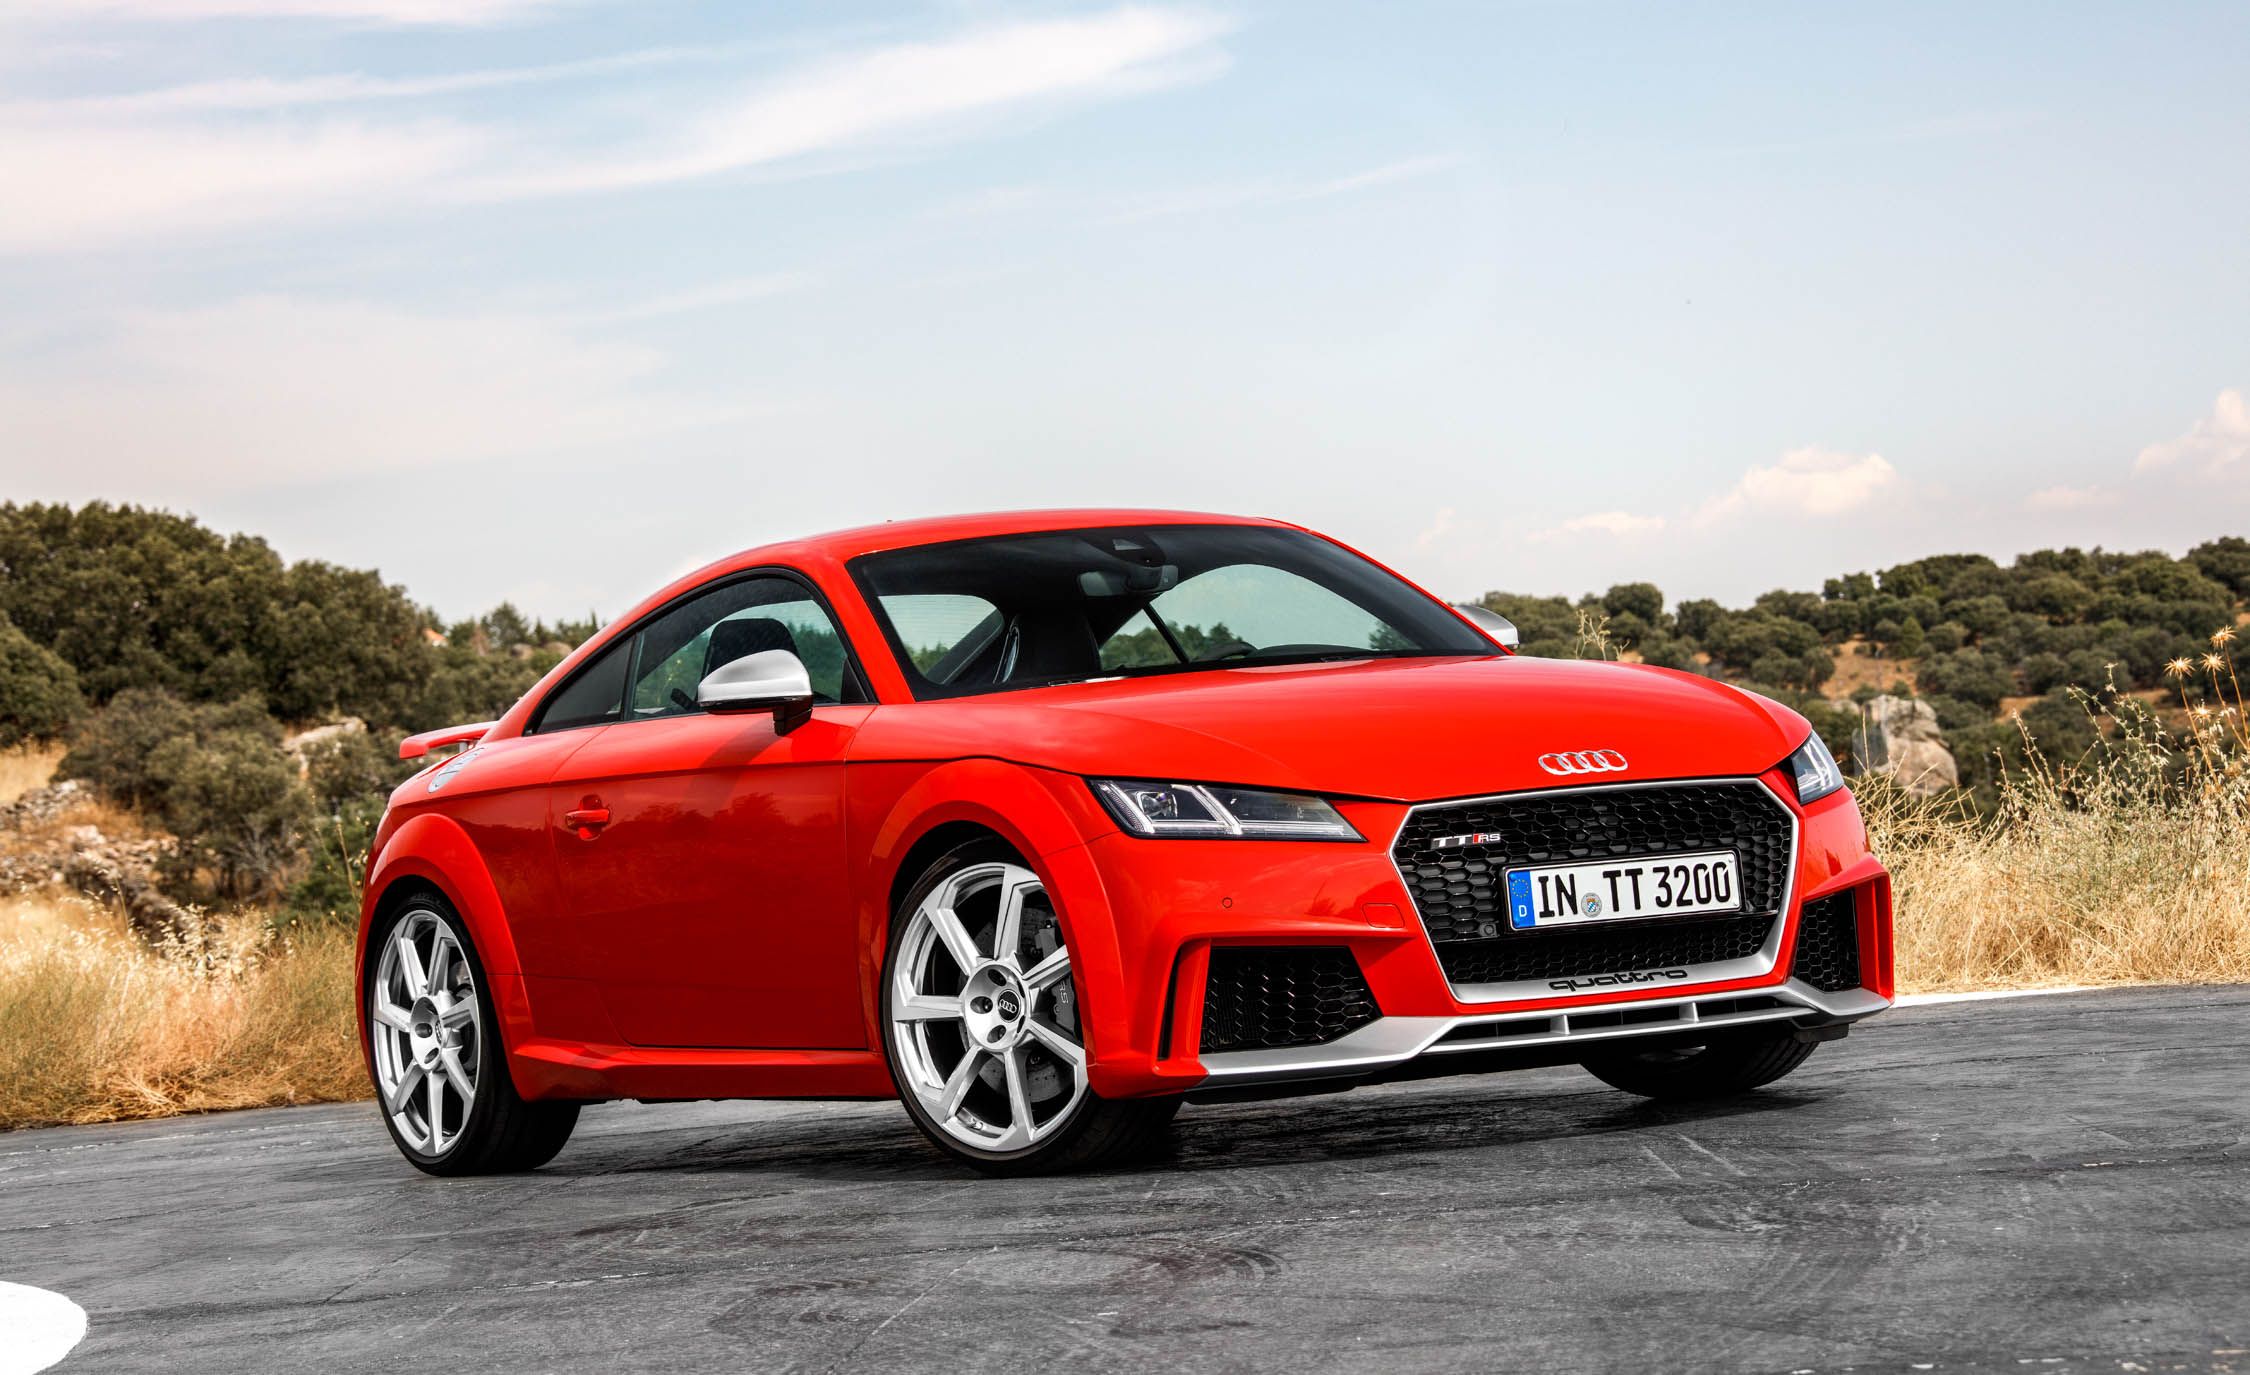 2018 audi tt rs coupe cars exclusive videos and photos. Black Bedroom Furniture Sets. Home Design Ideas